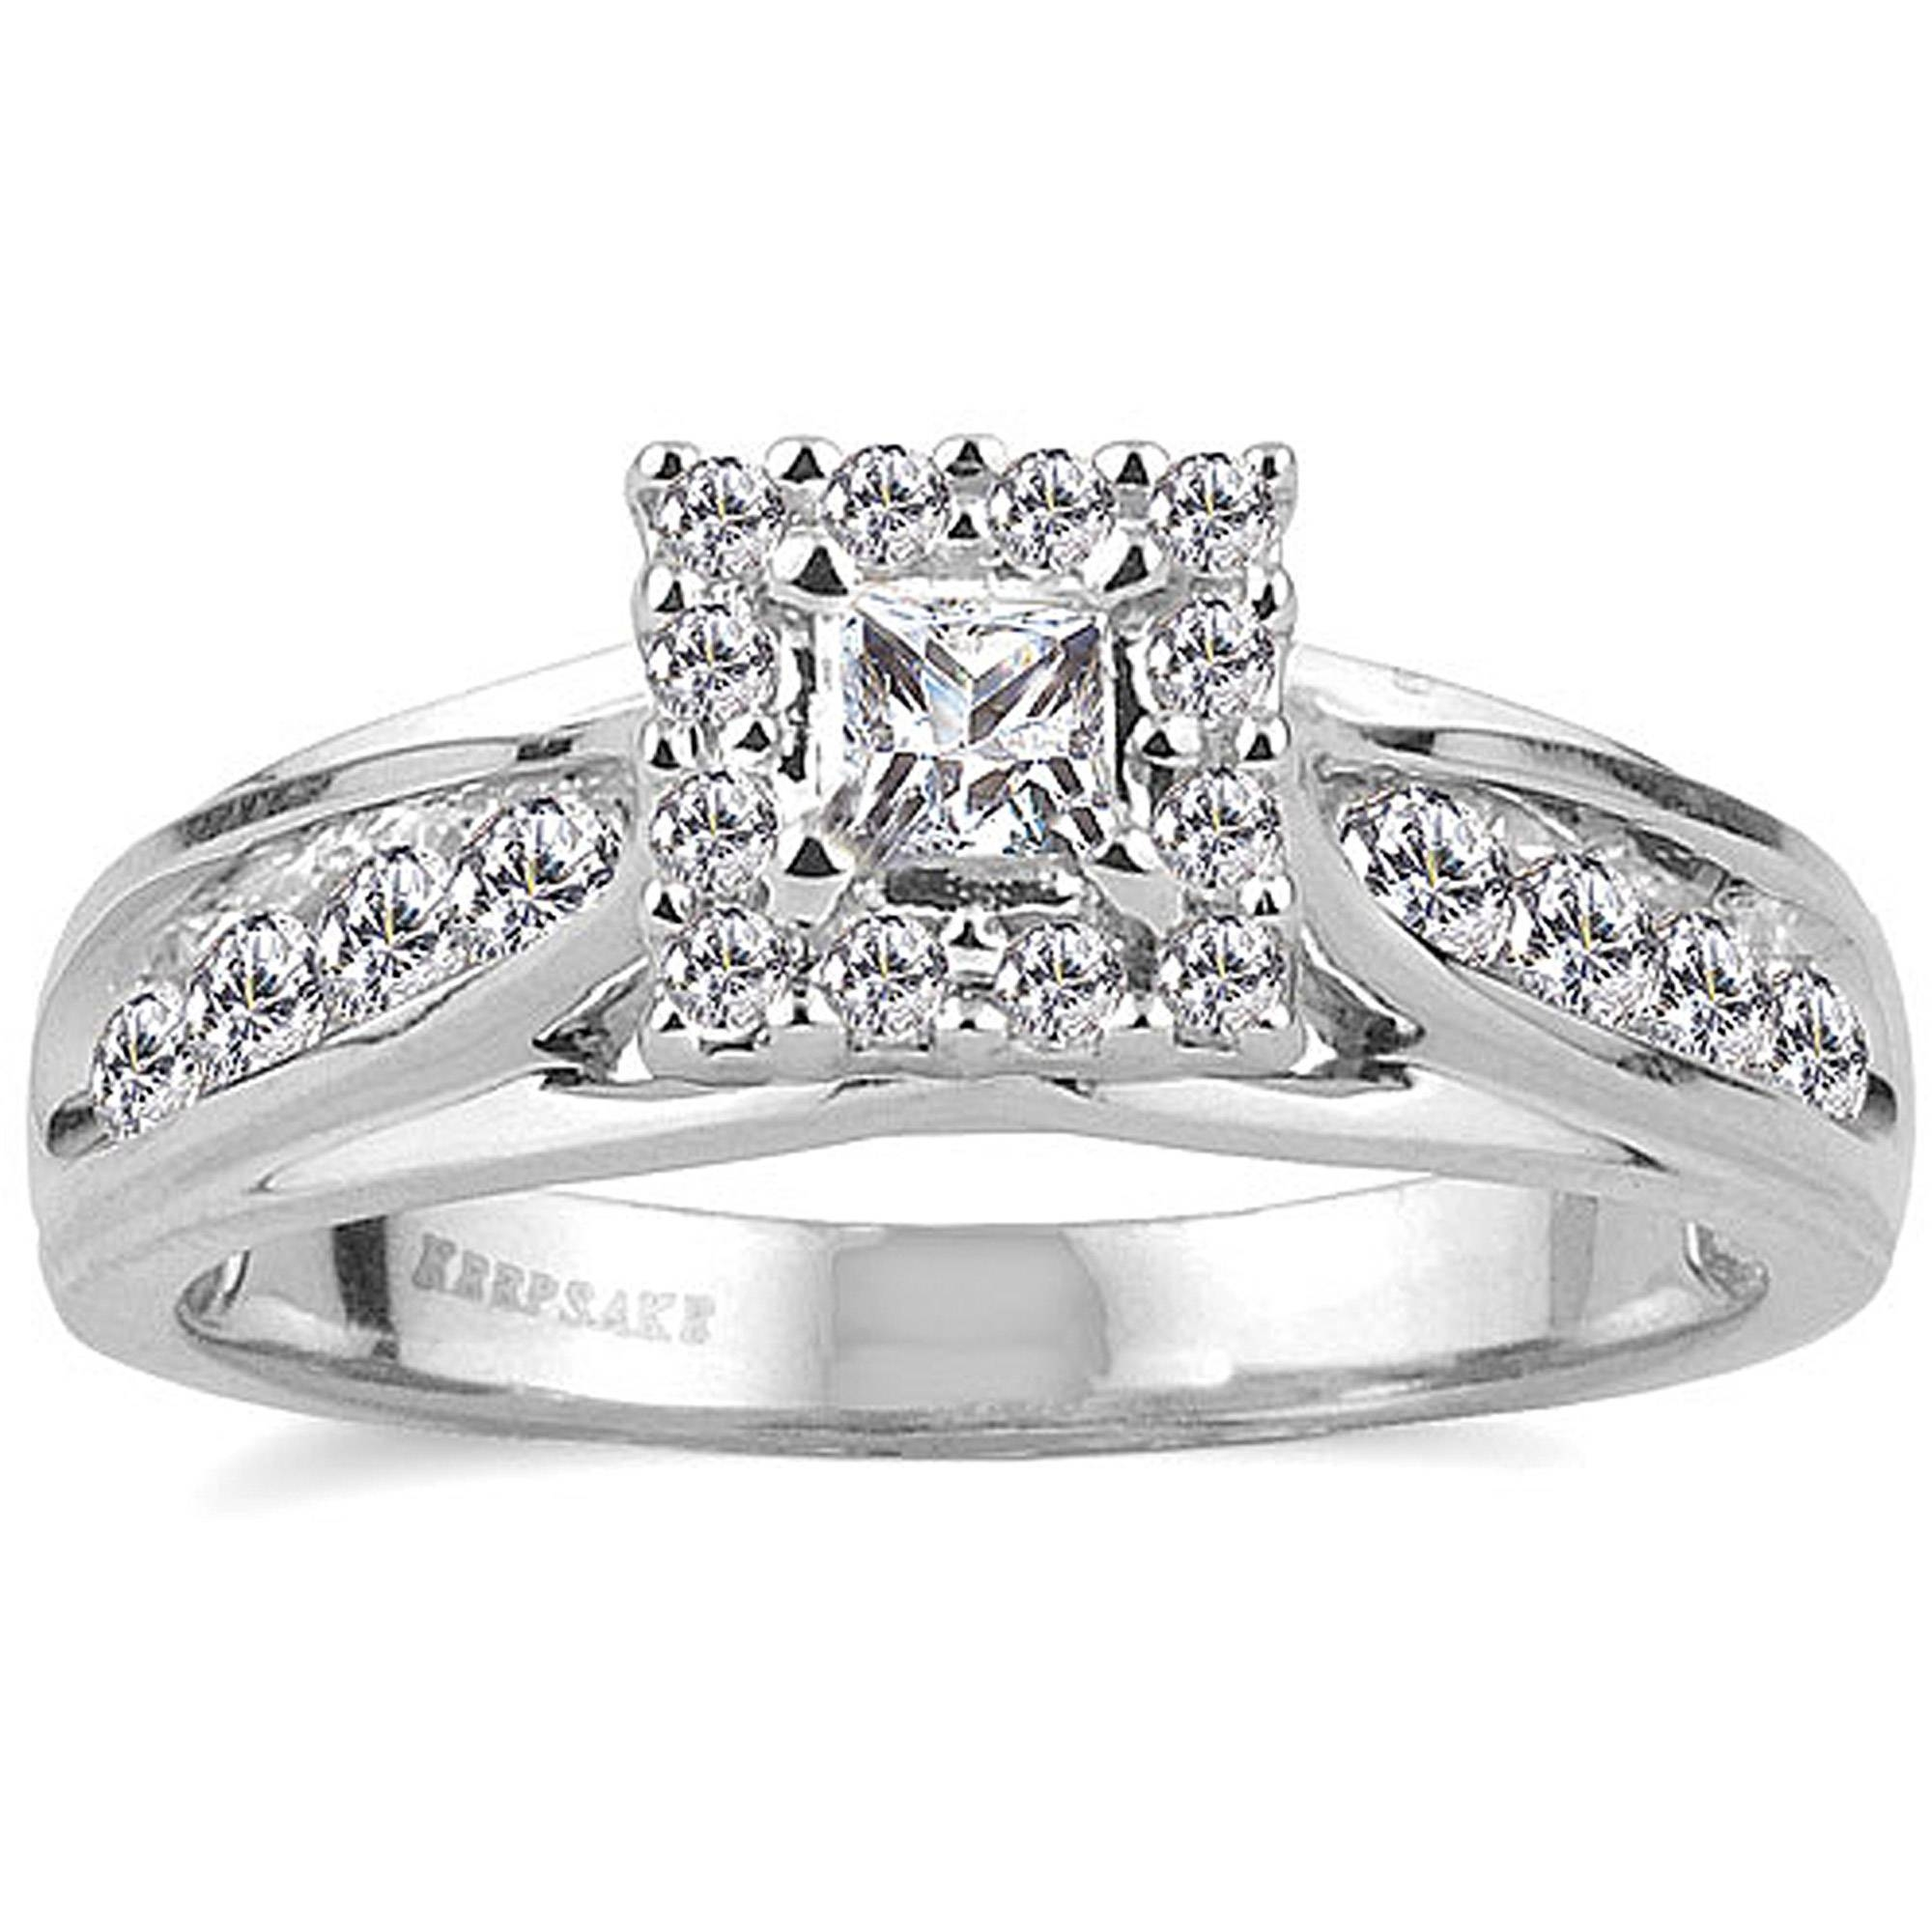 Keepsake Melody 1/2 Carat T.w. Certified Diamond 10Kt White Gold Throughout Walmart Diamond Engagement Rings (Gallery 5 of 15)